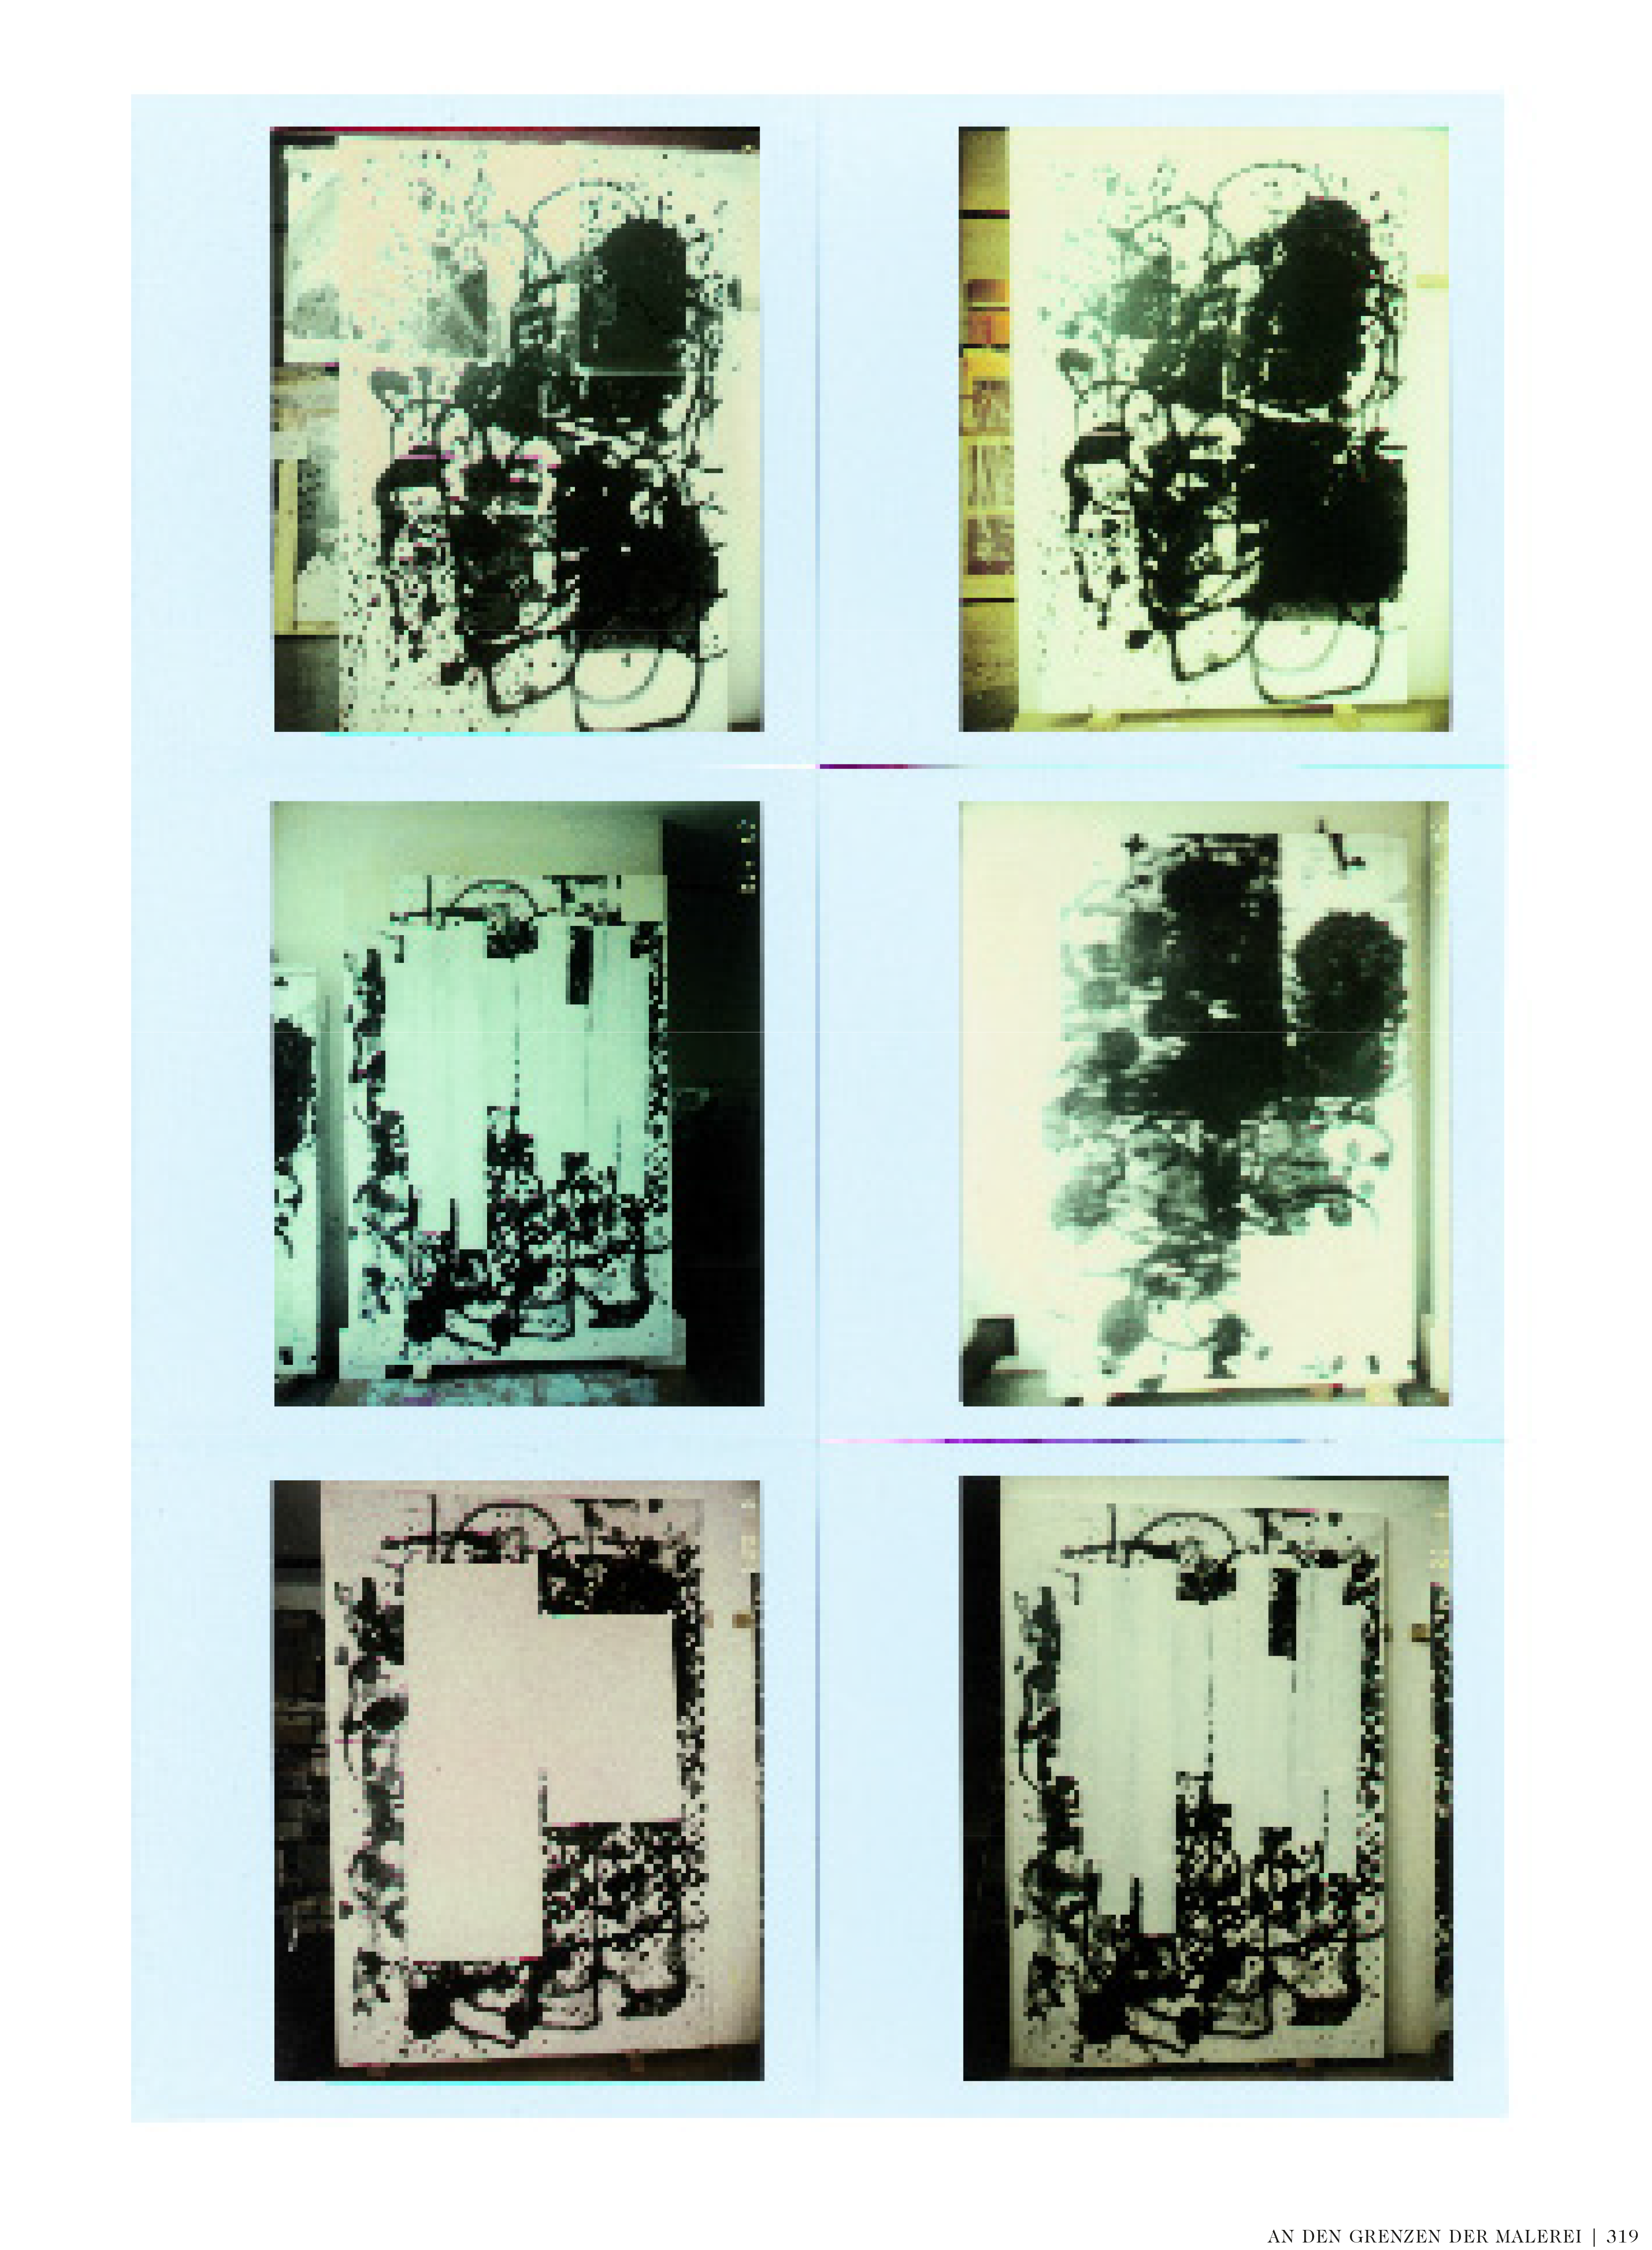 """Anne Pontégnie, """"At the Limits of Painting"""" in: """"Christopher Wool"""". London: Taschen, 2012, p.313-322."""